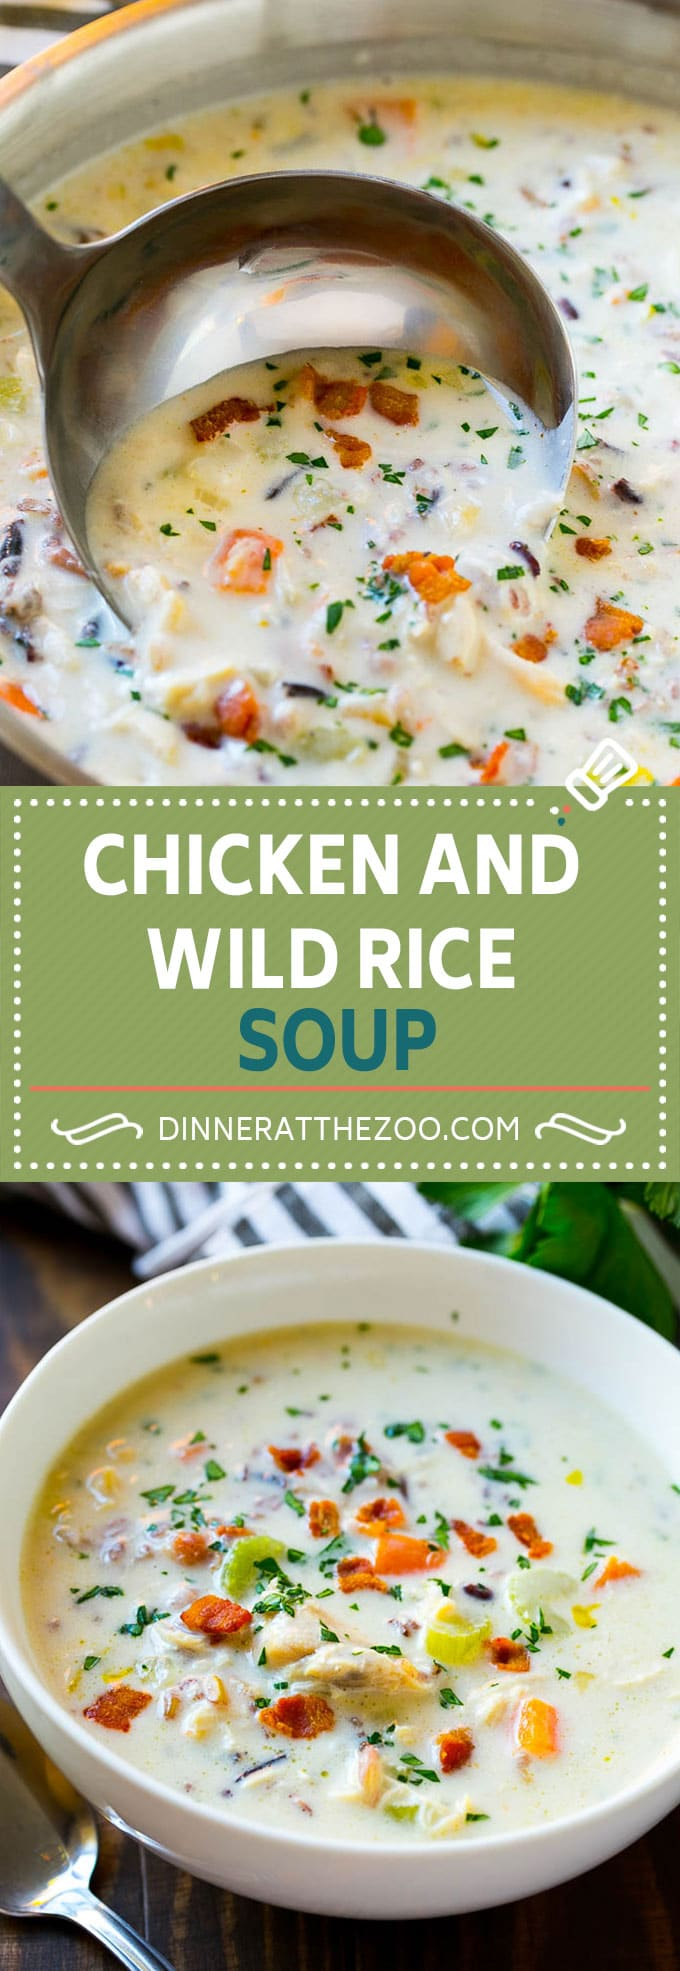 Chicken and Wild Rice Soup Recipe | Creamy Chicken Soup | Chicken and Rice Soup | Panera Bread Chicken and Wild Rice Soup #chicken #rice #wildrice #soup #dinner #dinneratthezoo